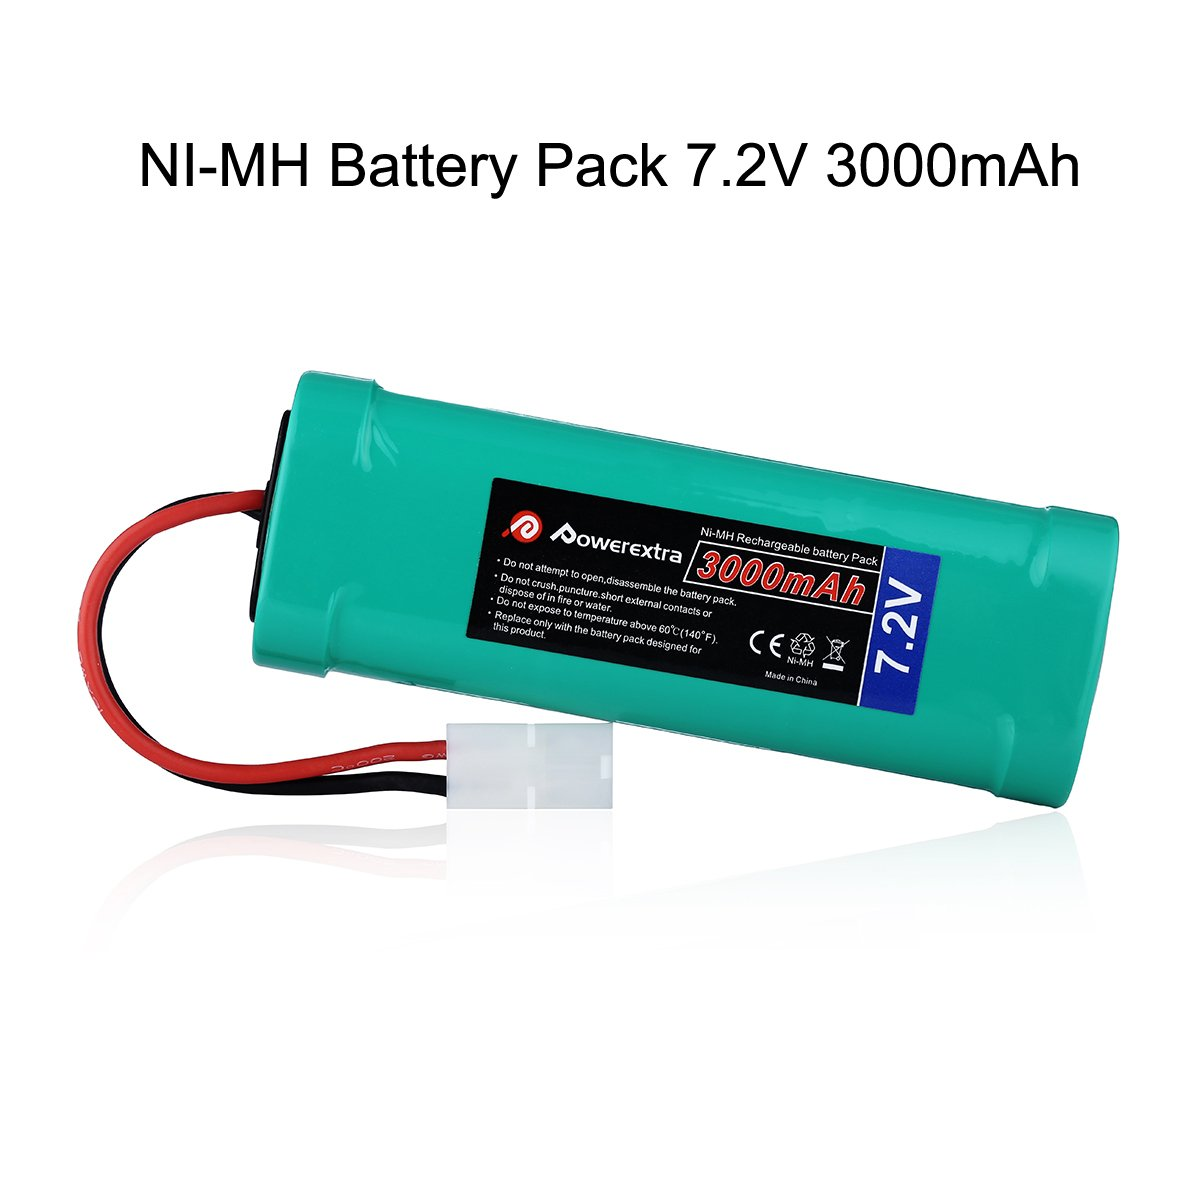 Powerextra 72v 3000mah High Power Rechargeable Nimh 12v Nicad Battery Charger 200ma H Pack Low Self Discharge With Ket Connectors Compatiable Rc Cars Truck